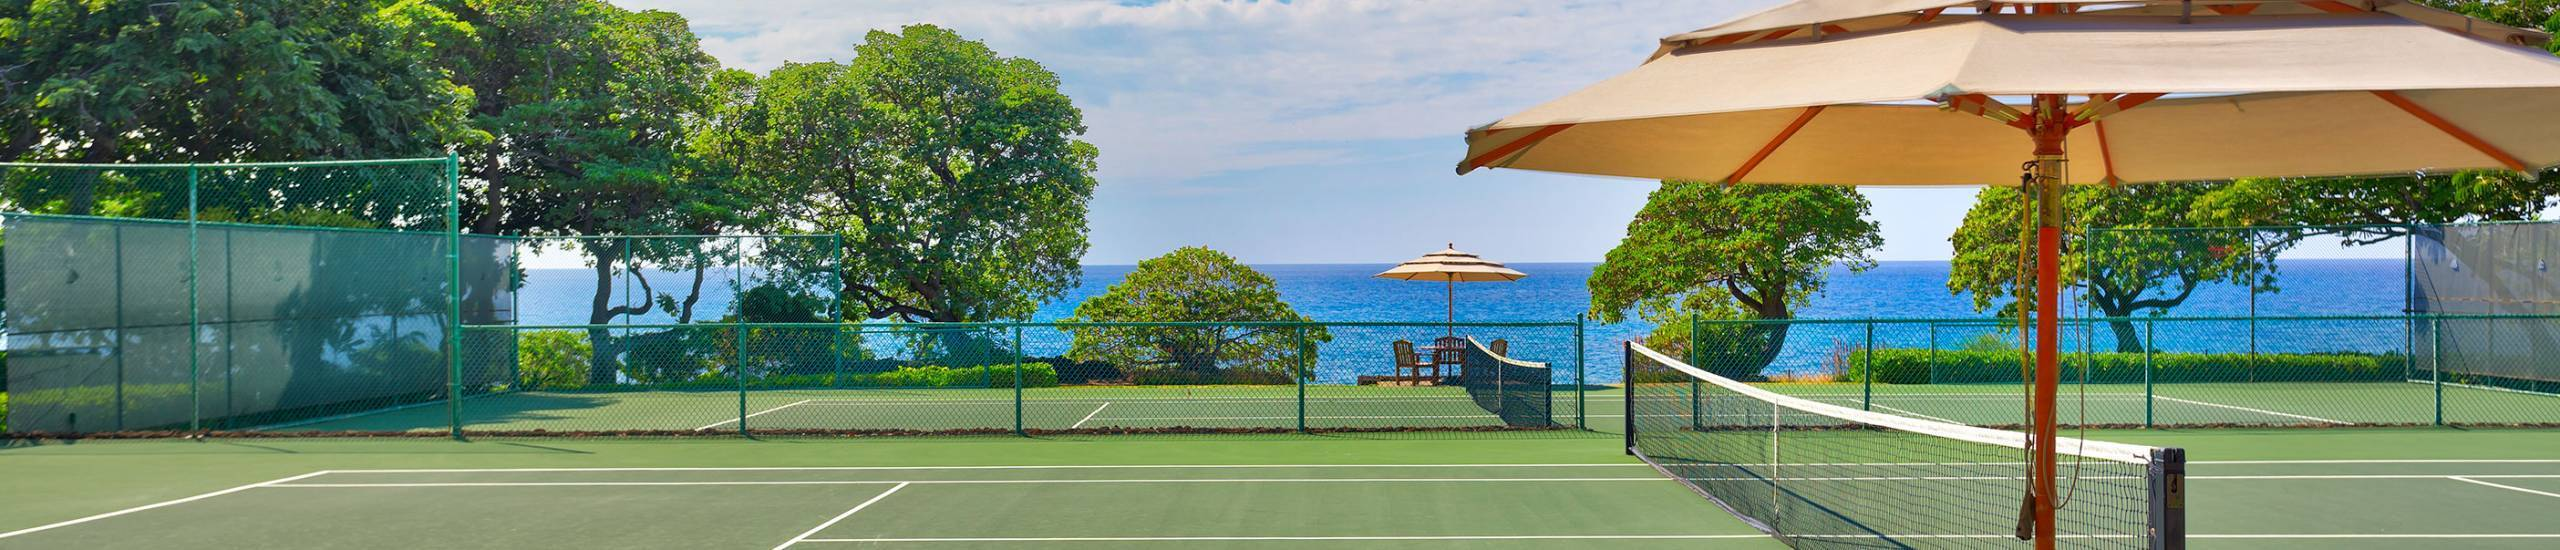 Mauna Kea Resort tennis courts overlooking ocean